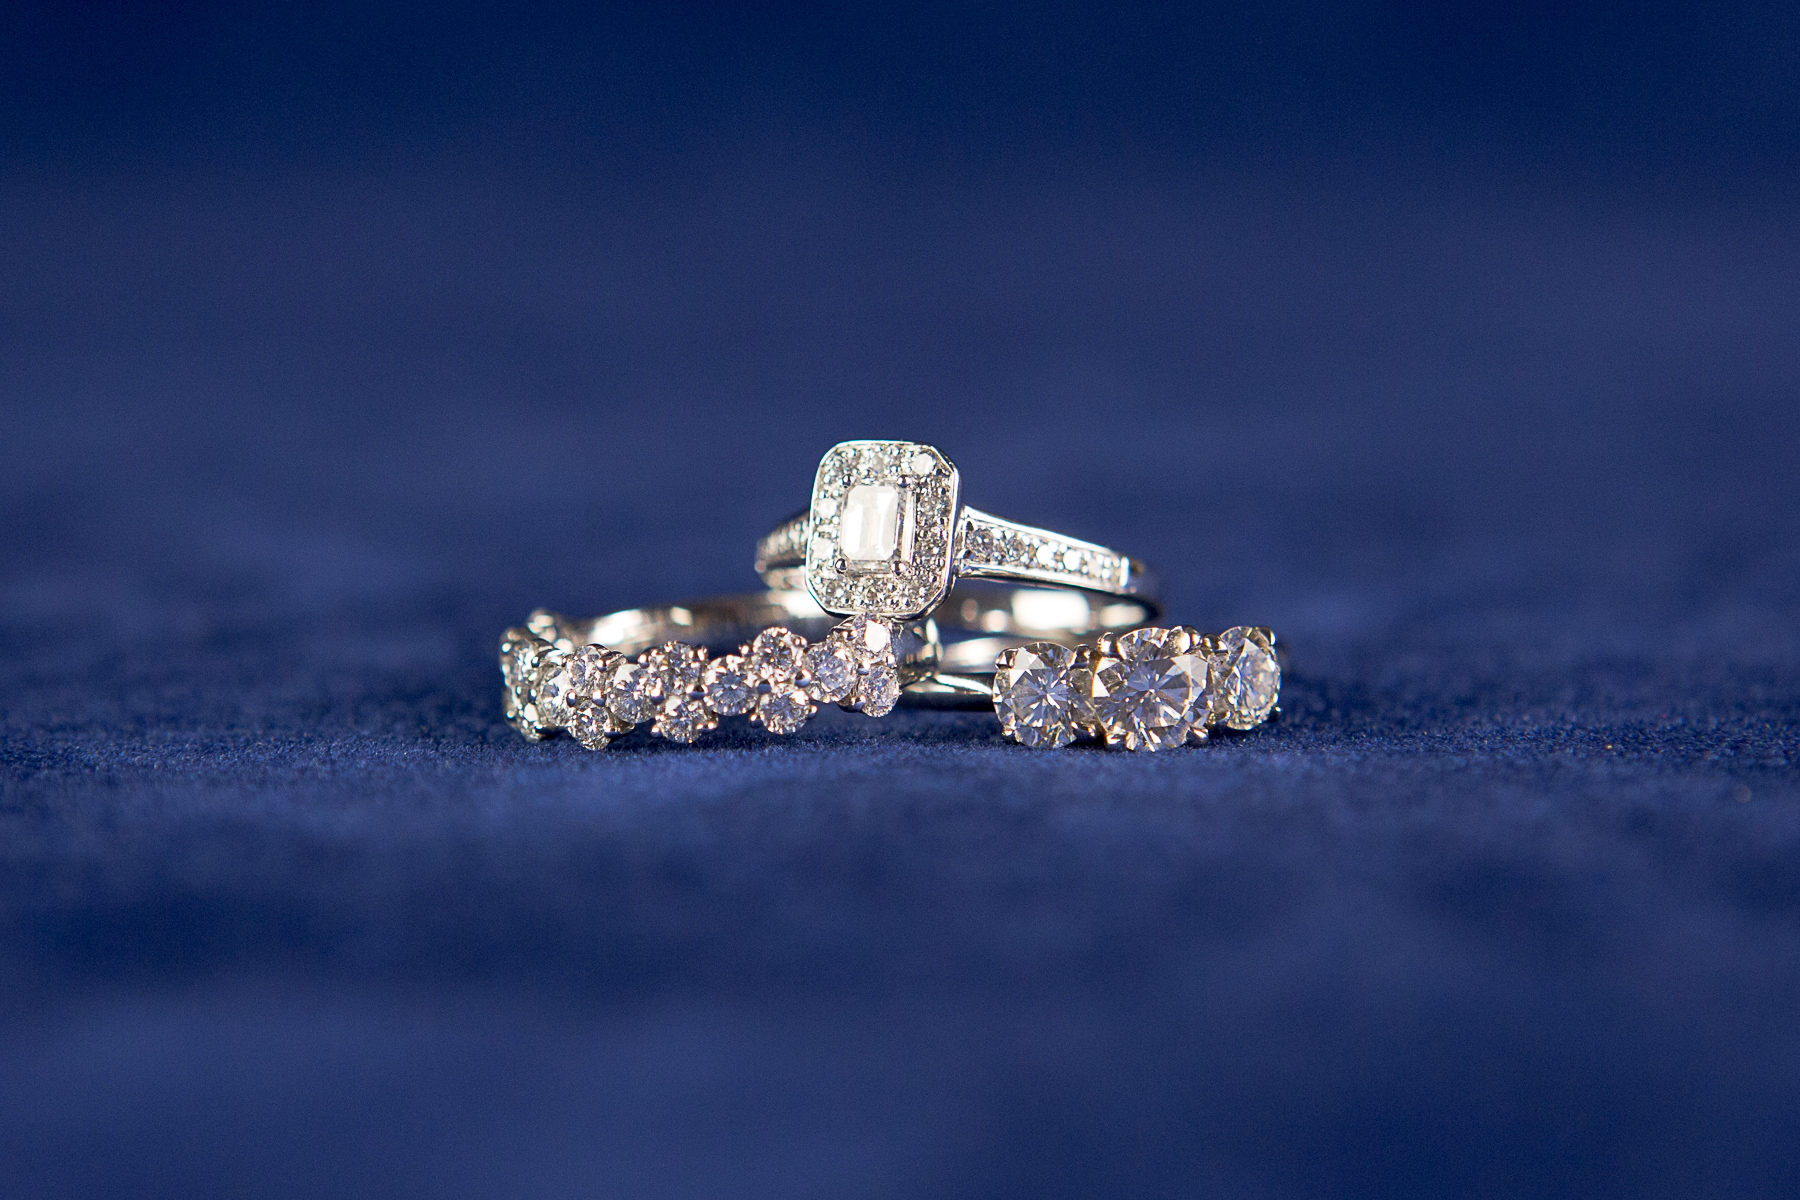 Antique Diamond Rings